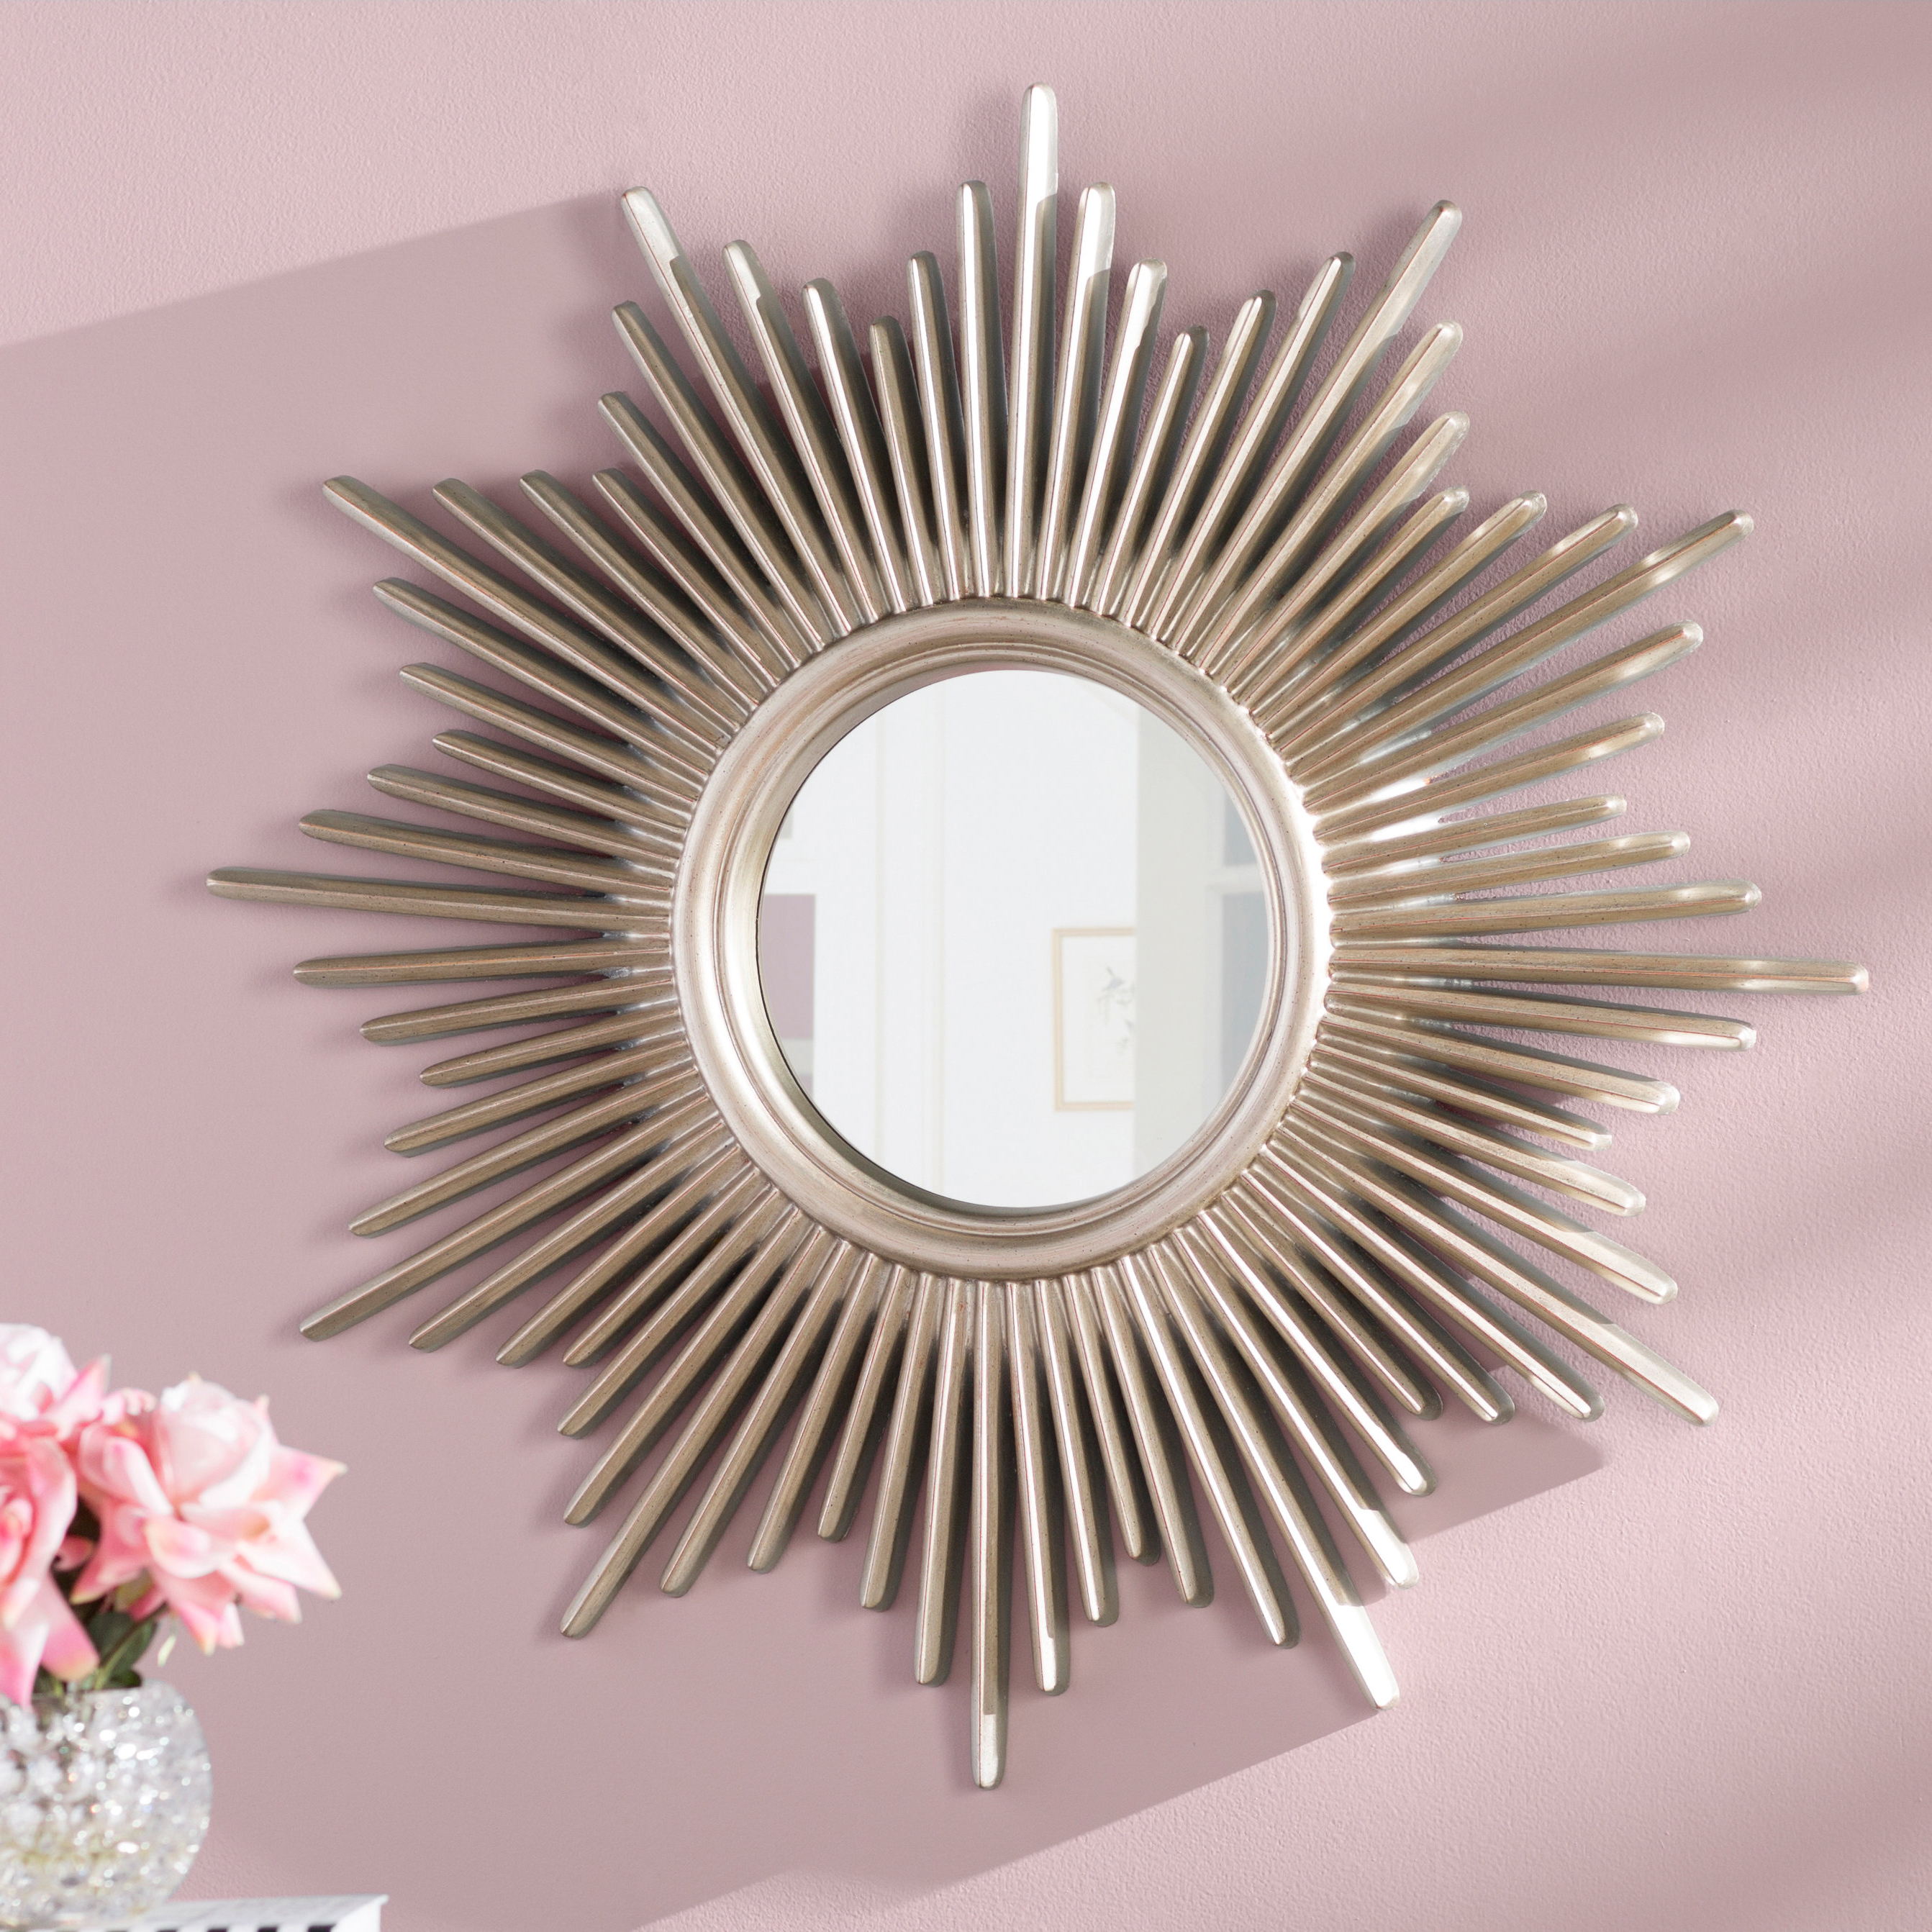 Best And Newest Willa Arlo Interiors Josephson Starburst Glam Beveled Accent Wall Throughout Starburst Wall Decor By Willa Arlo Interiors (Gallery 3 of 20)